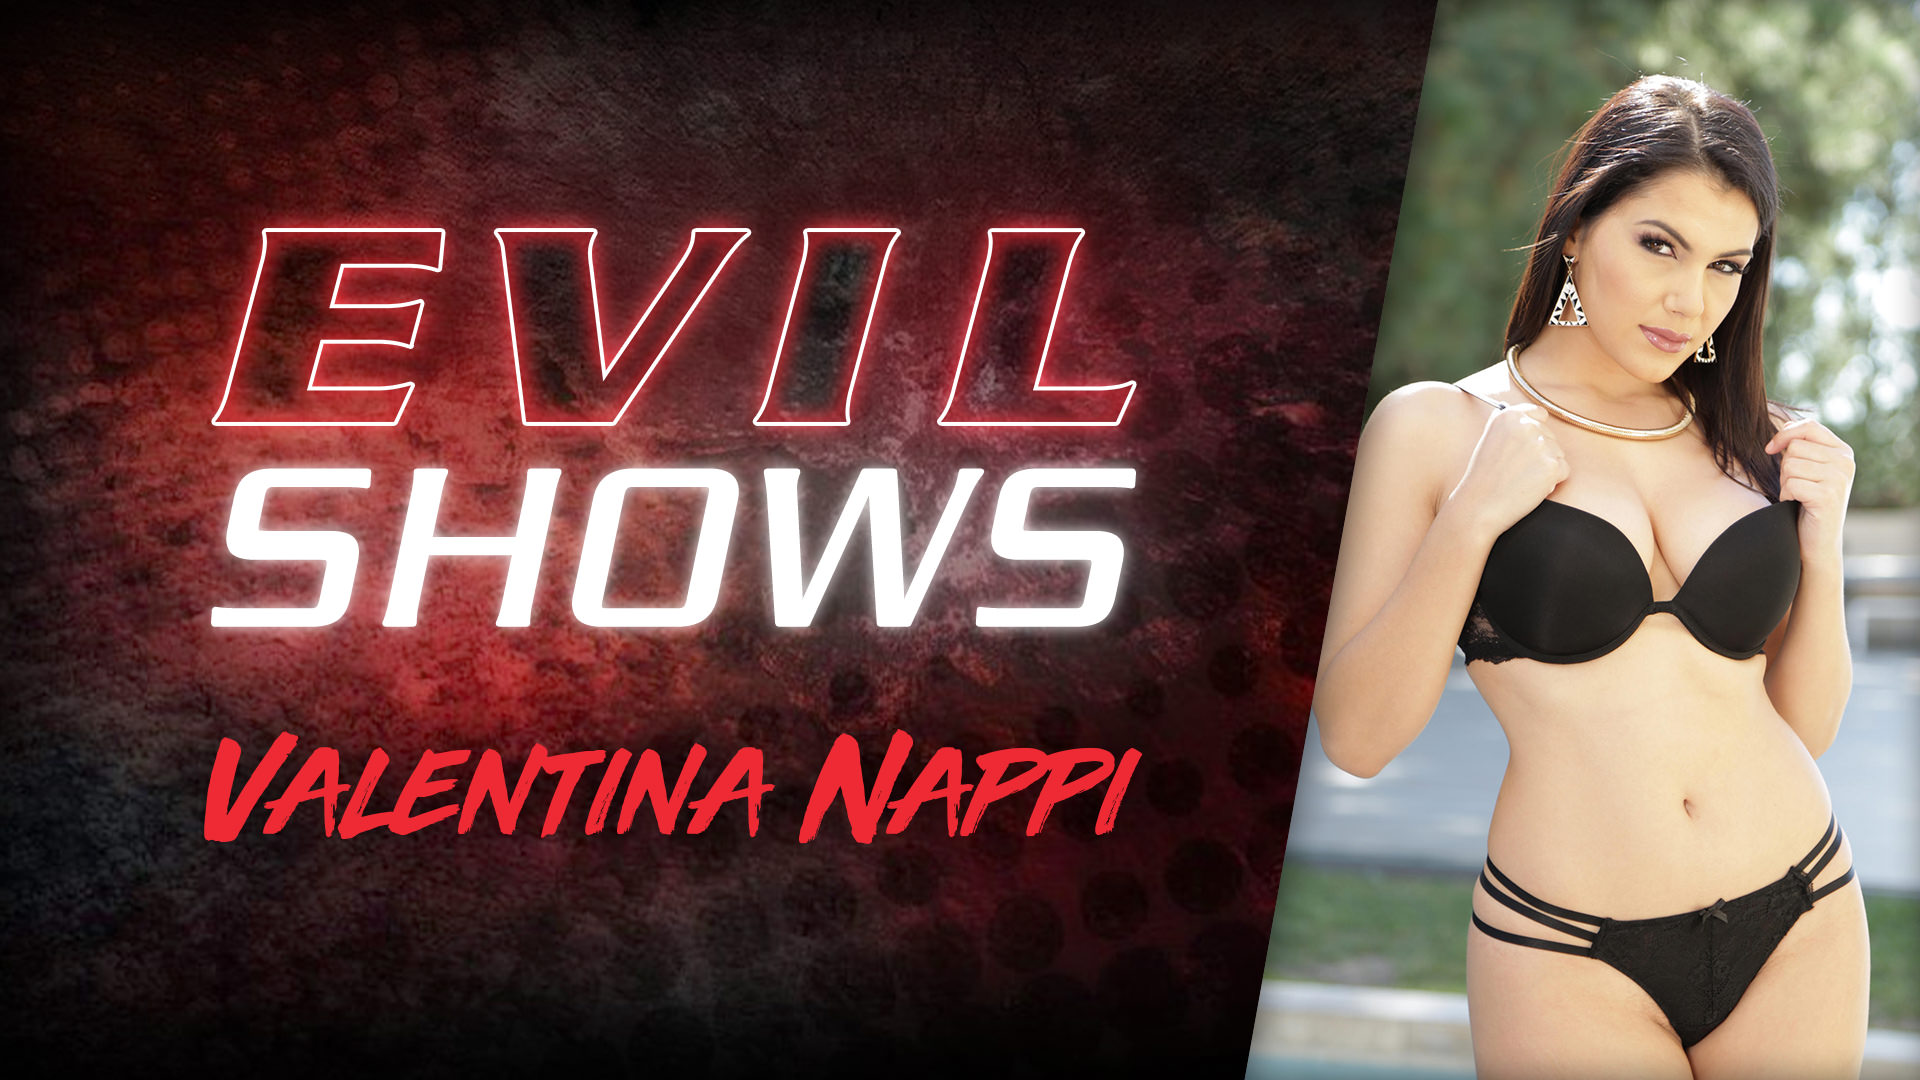 Evil Shows - Valentina Nappi